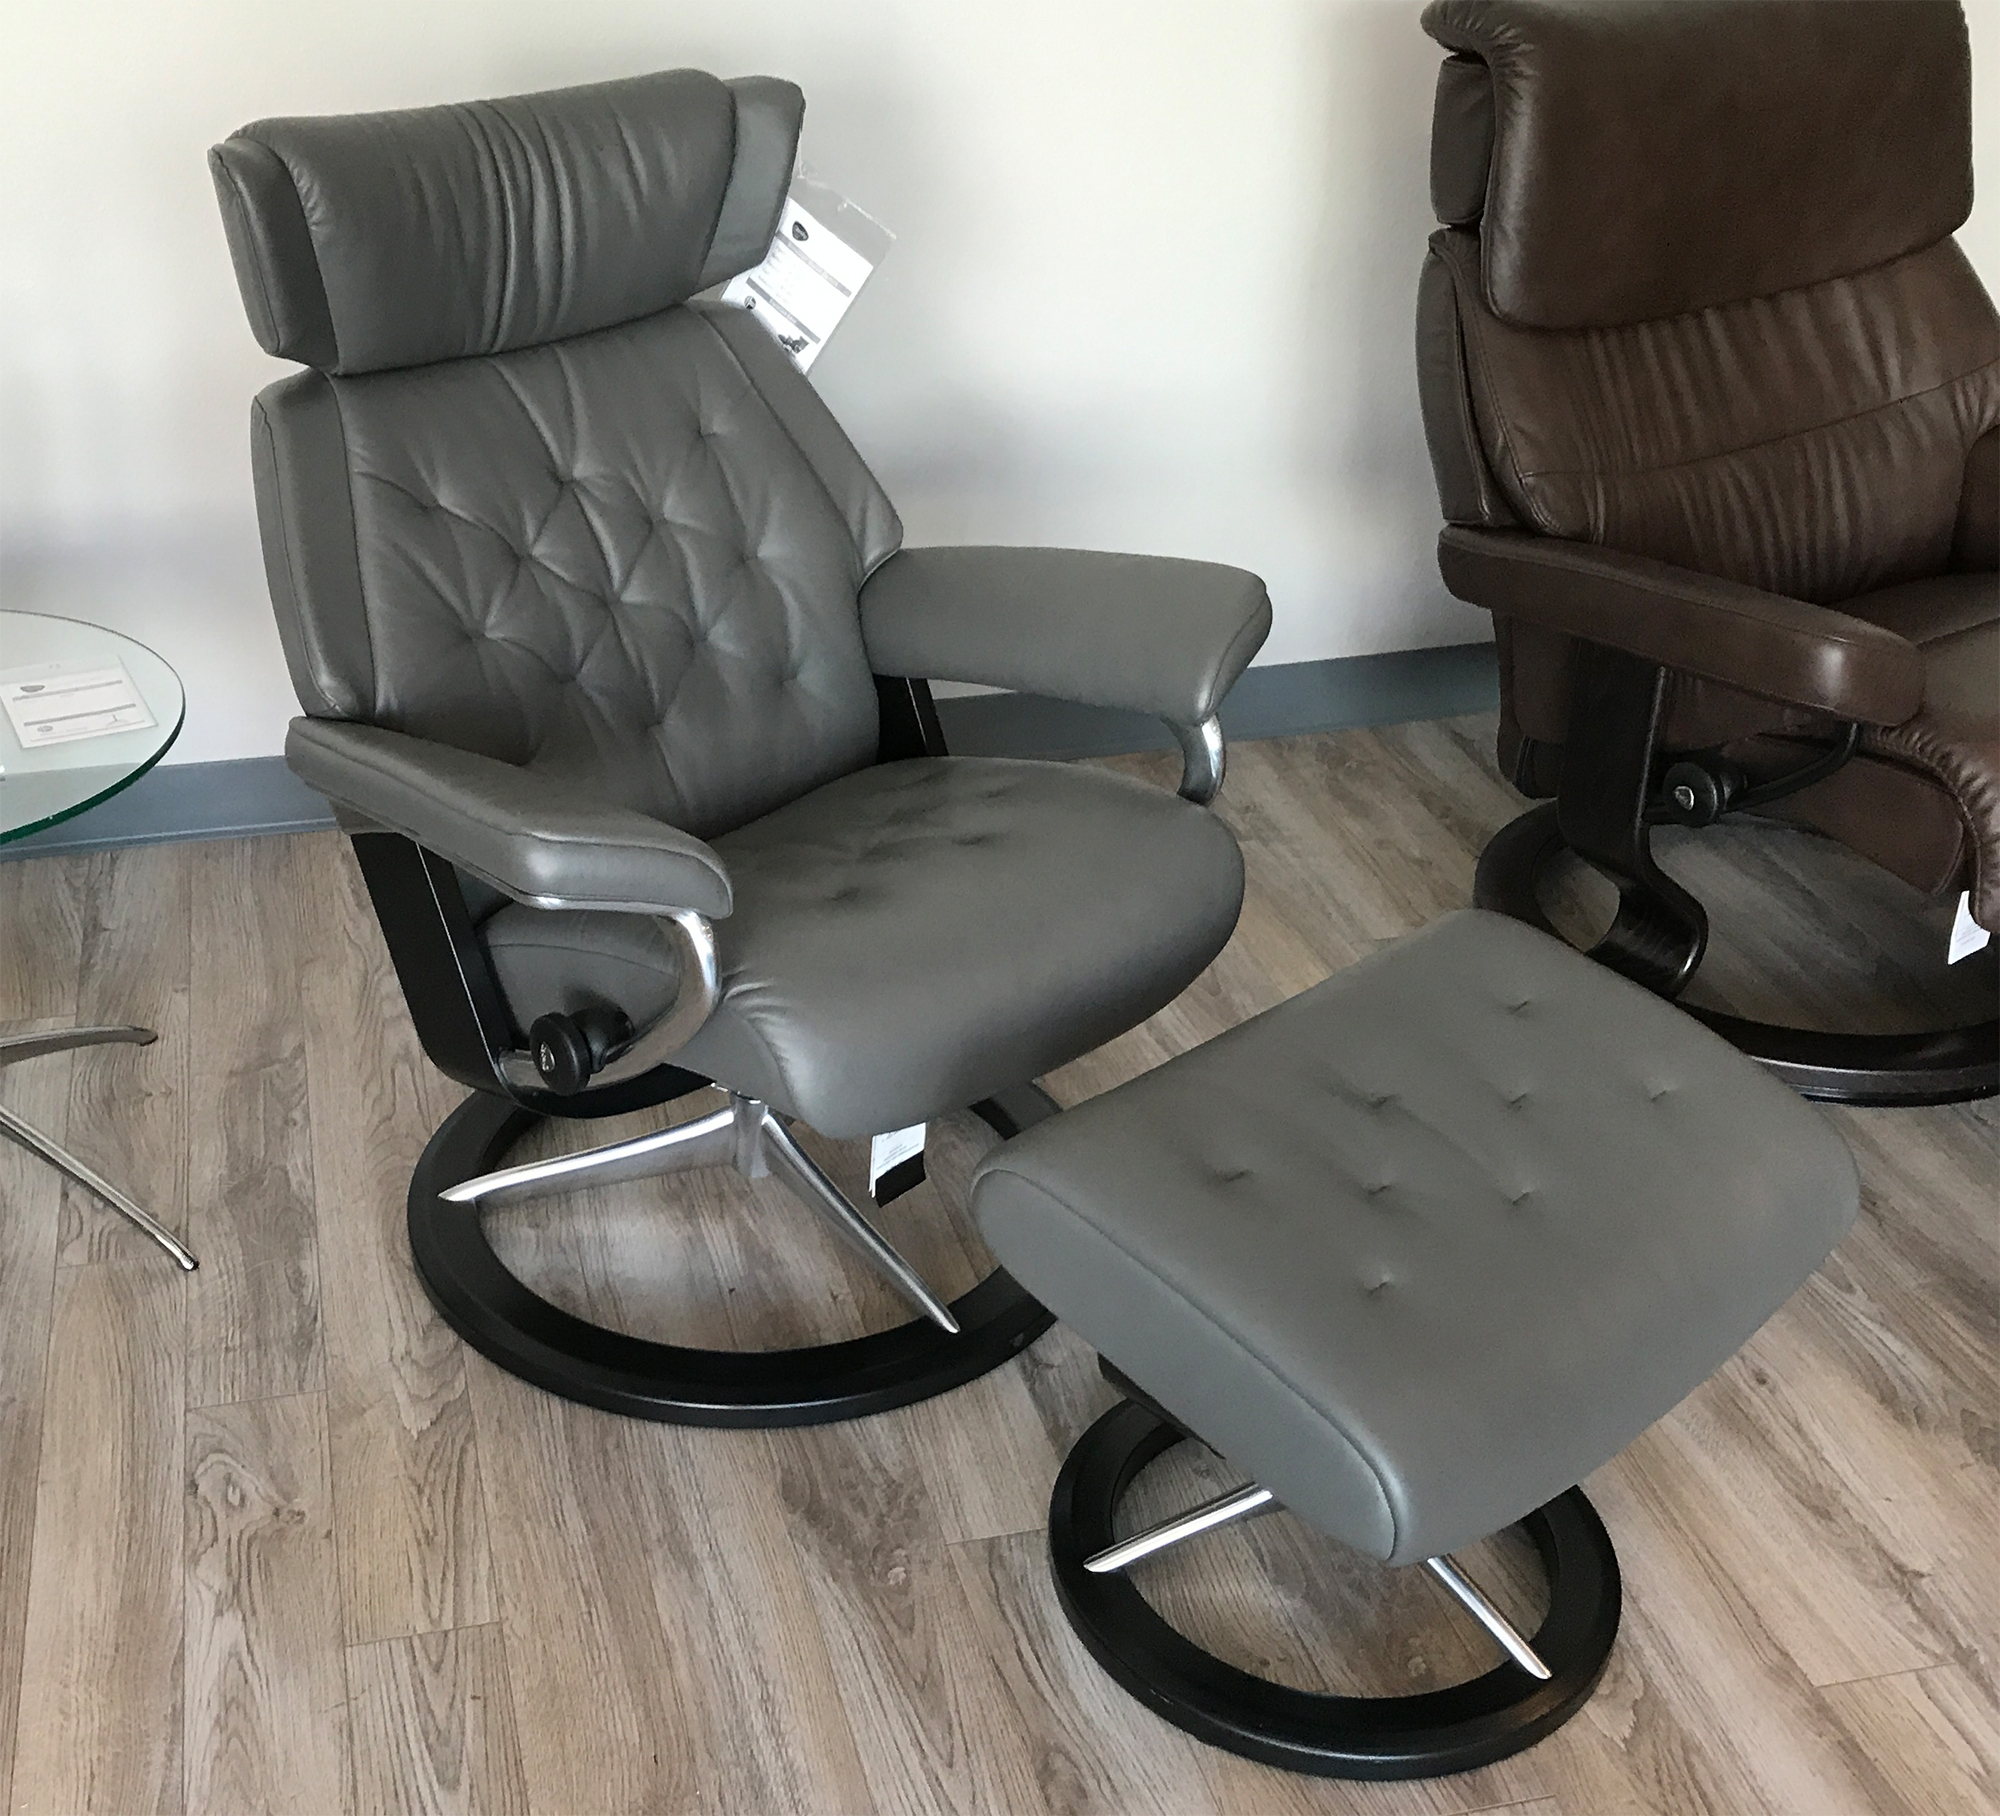 Awe Inspiring Stressless Skyline Signature Base Paloma Metal Grey Leather Recliner Chair And Ottoman By Ekornes Short Links Chair Design For Home Short Linksinfo